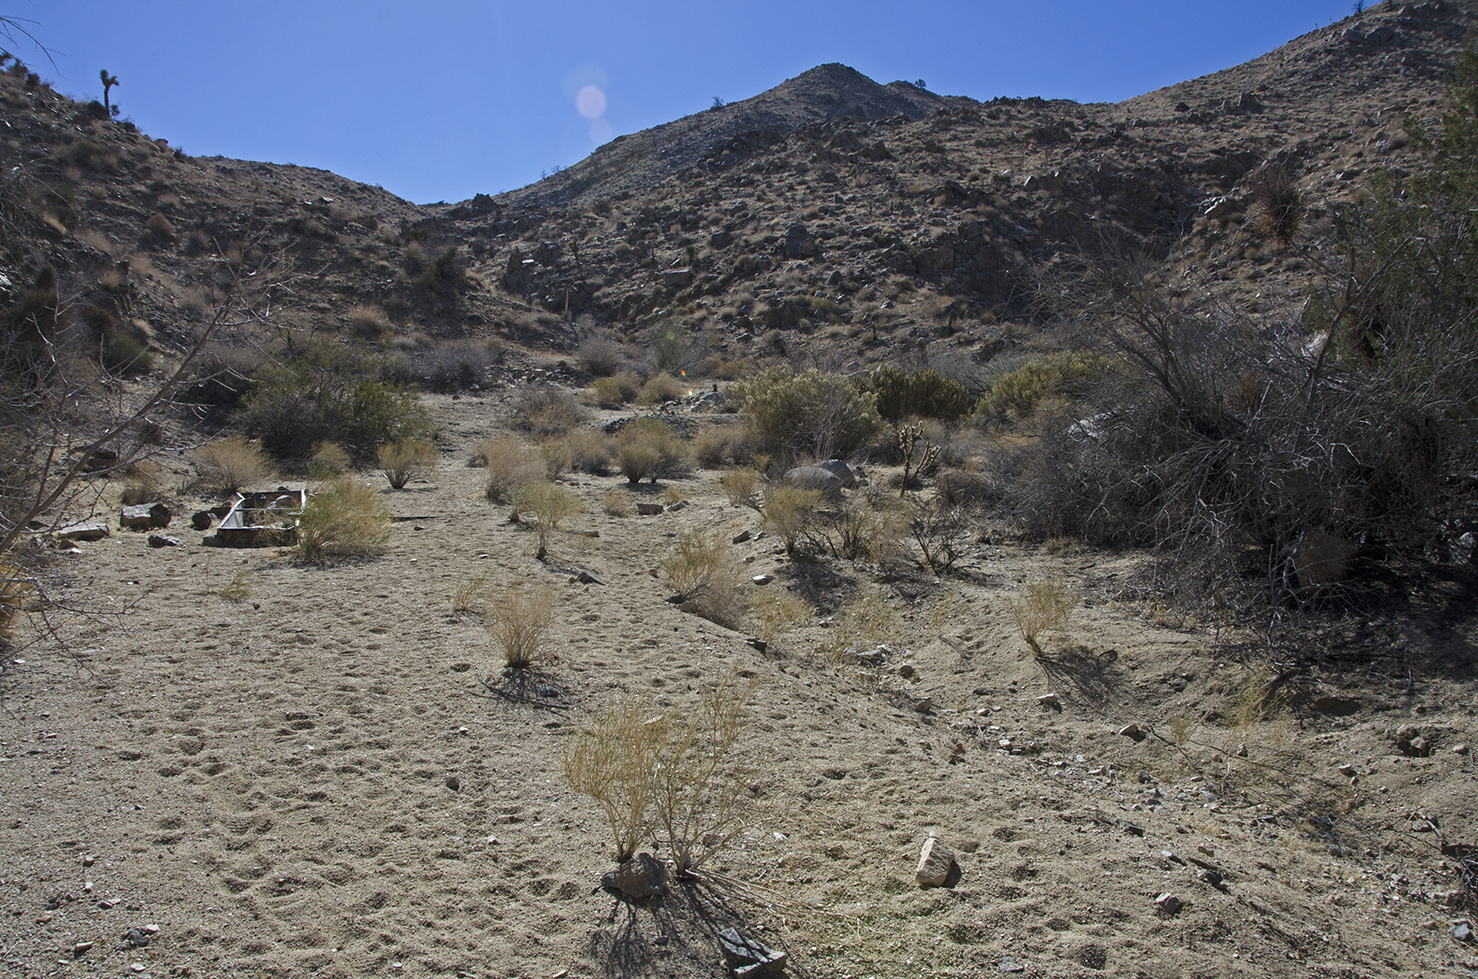 First view of Pinyon Well settlement area